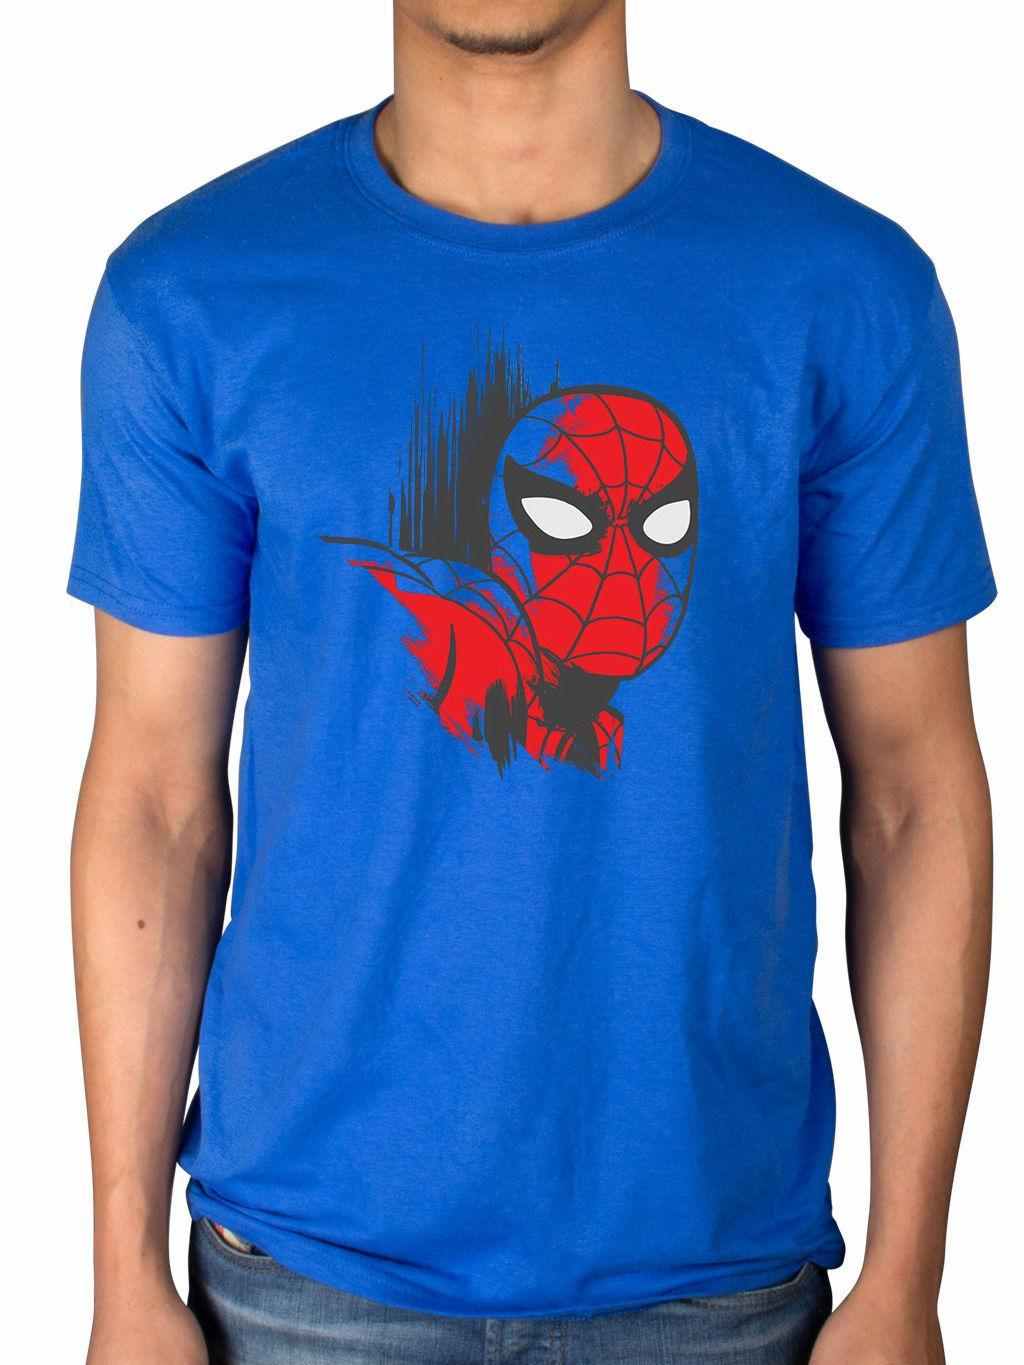 aef082f2 Official Marvel Comics Spiderman Art T Shirt Superhero Iron Man Hulk X Men  Fan Designer White T Shirt Printed T Shirts Funny From Yubin06, $25.33|  DHgate.